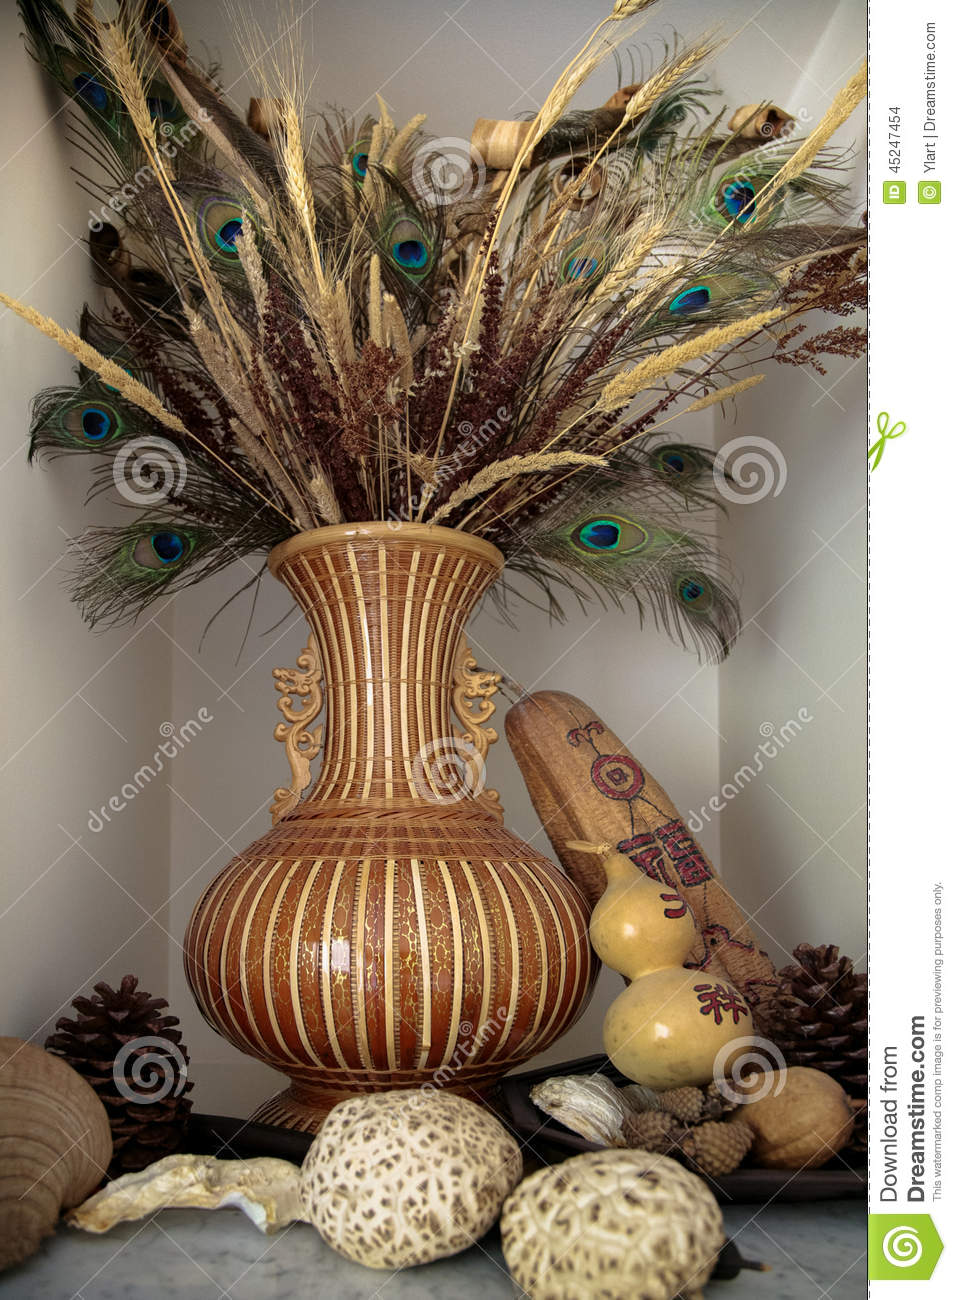 Home Decoration stock photo. Image of wooden, home, decor ...